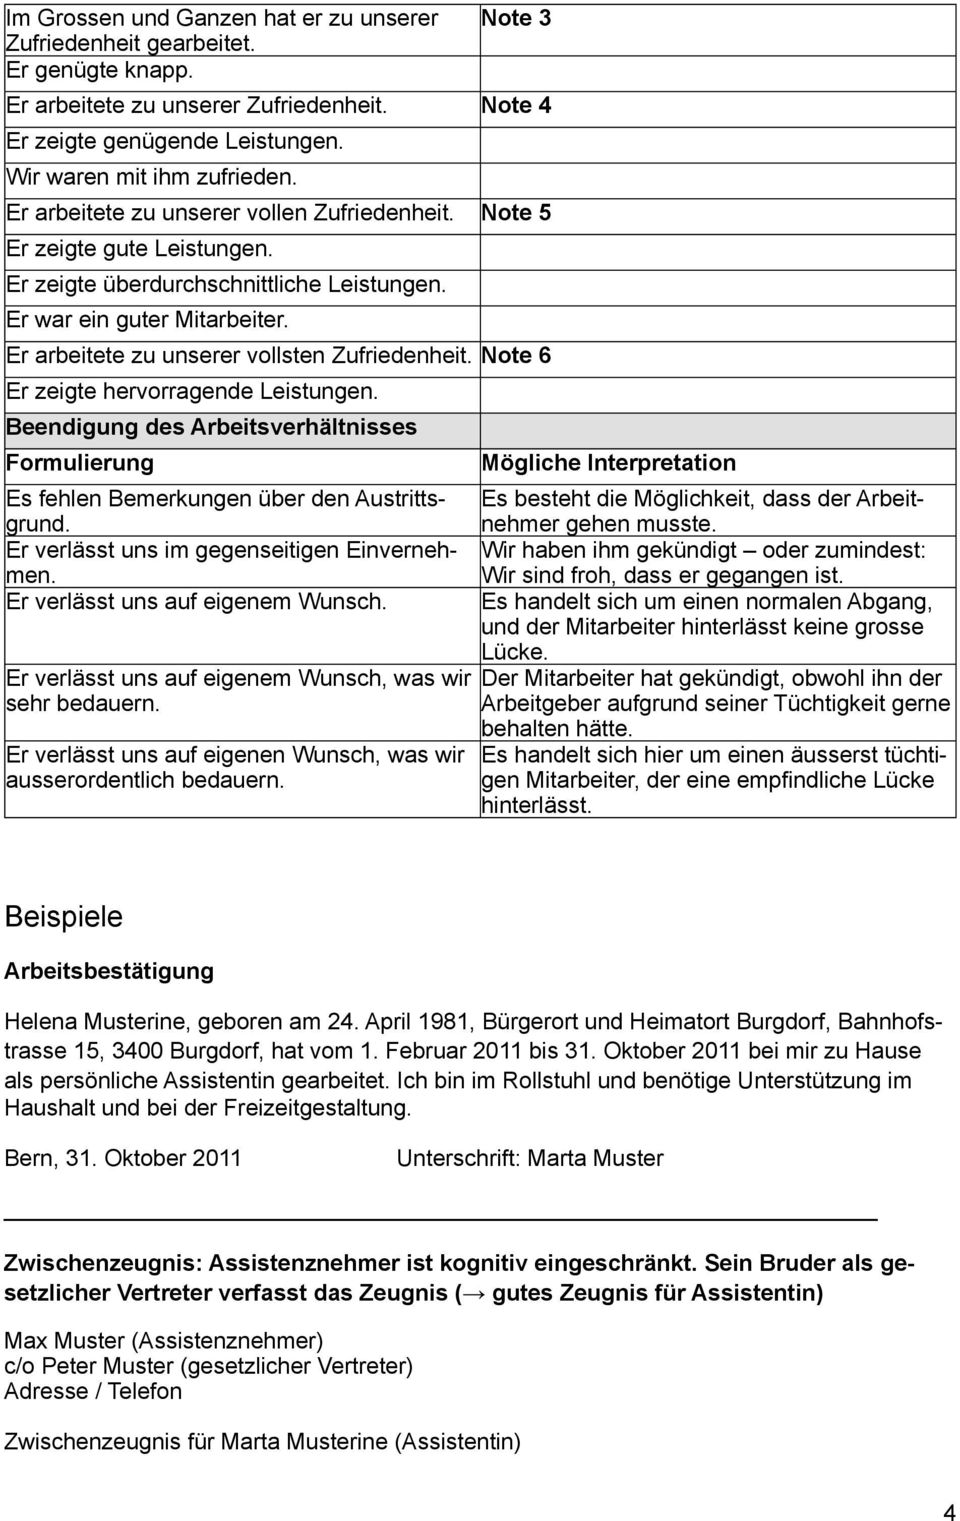 Groß Auditvorschlagsvorlage Galerie - Entry Level Resume Vorlagen ...